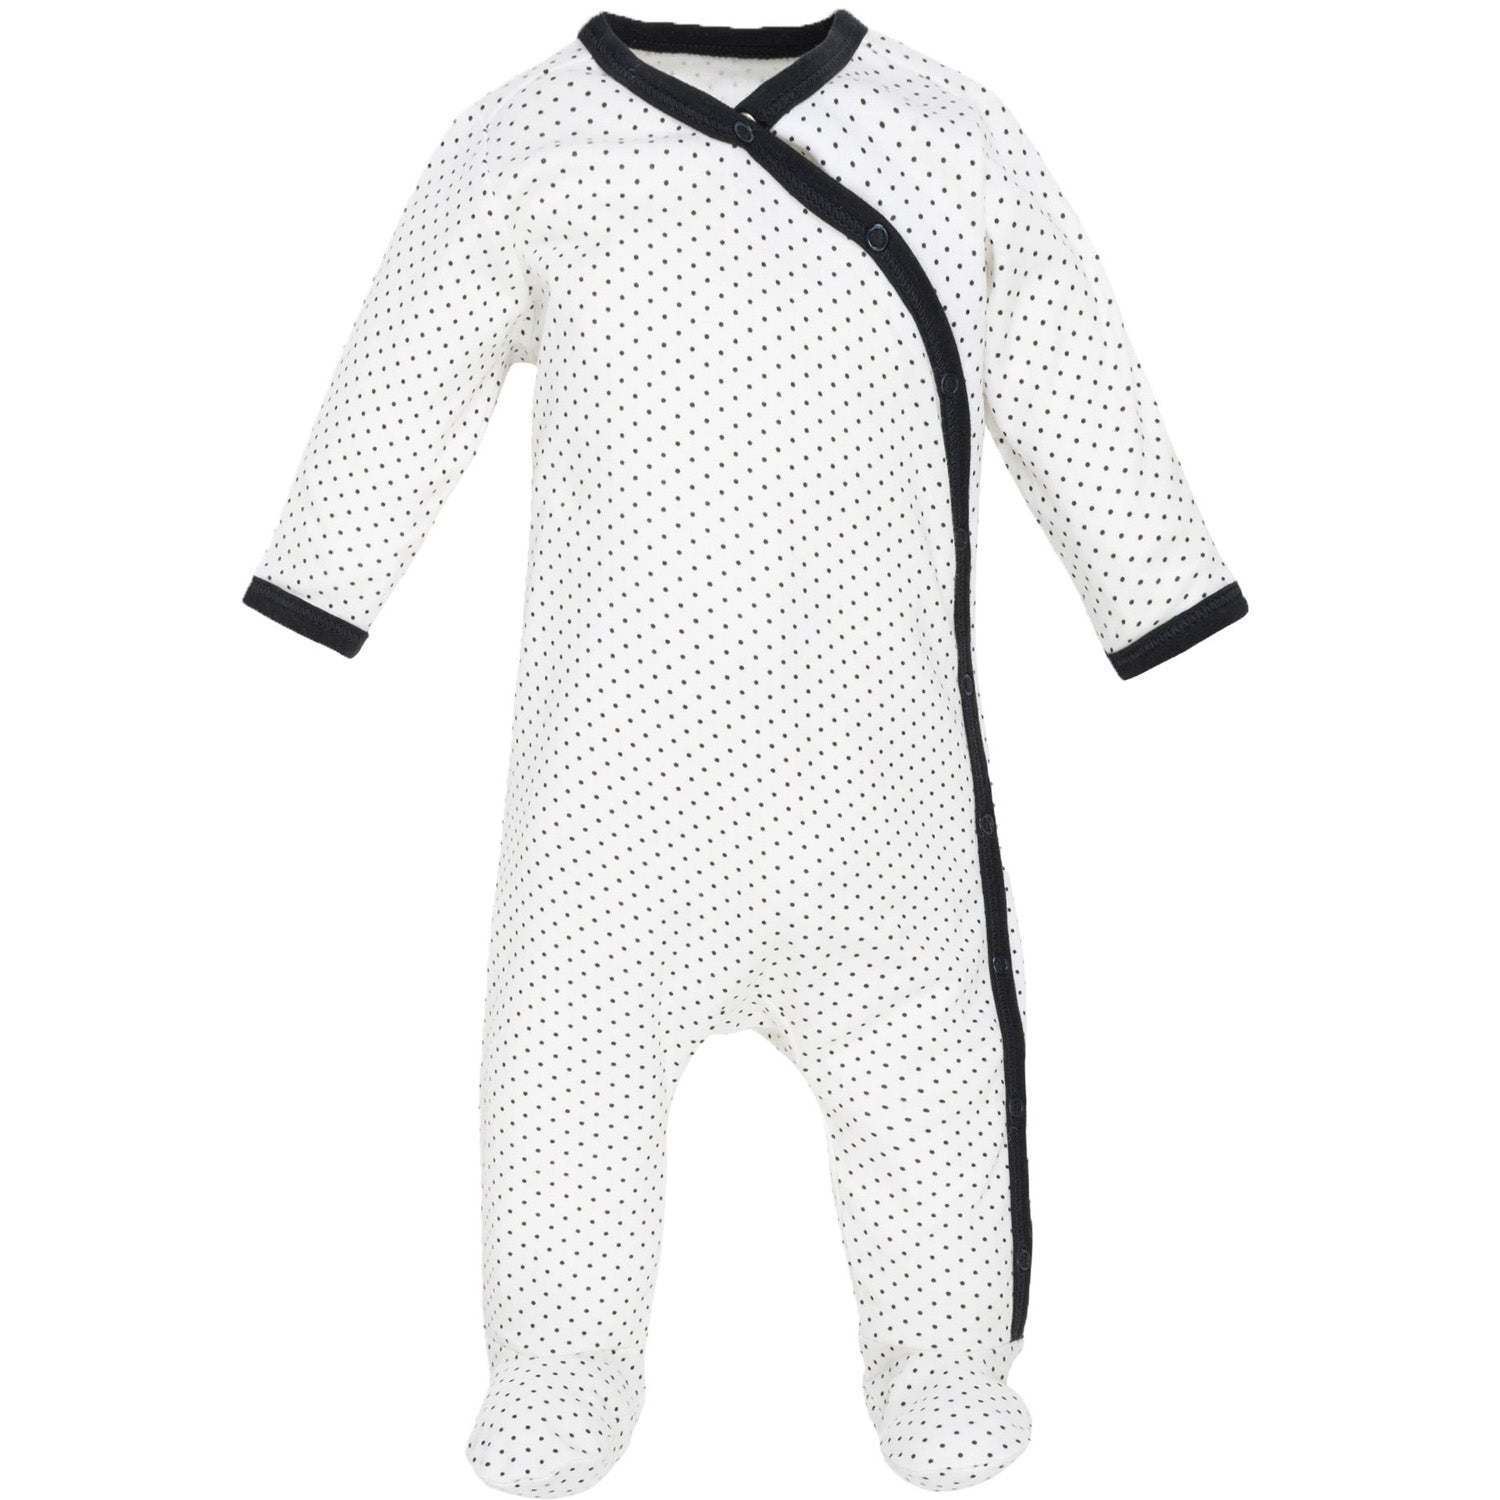 Under the Nile Organic Side Snap Footie - Polka Dots